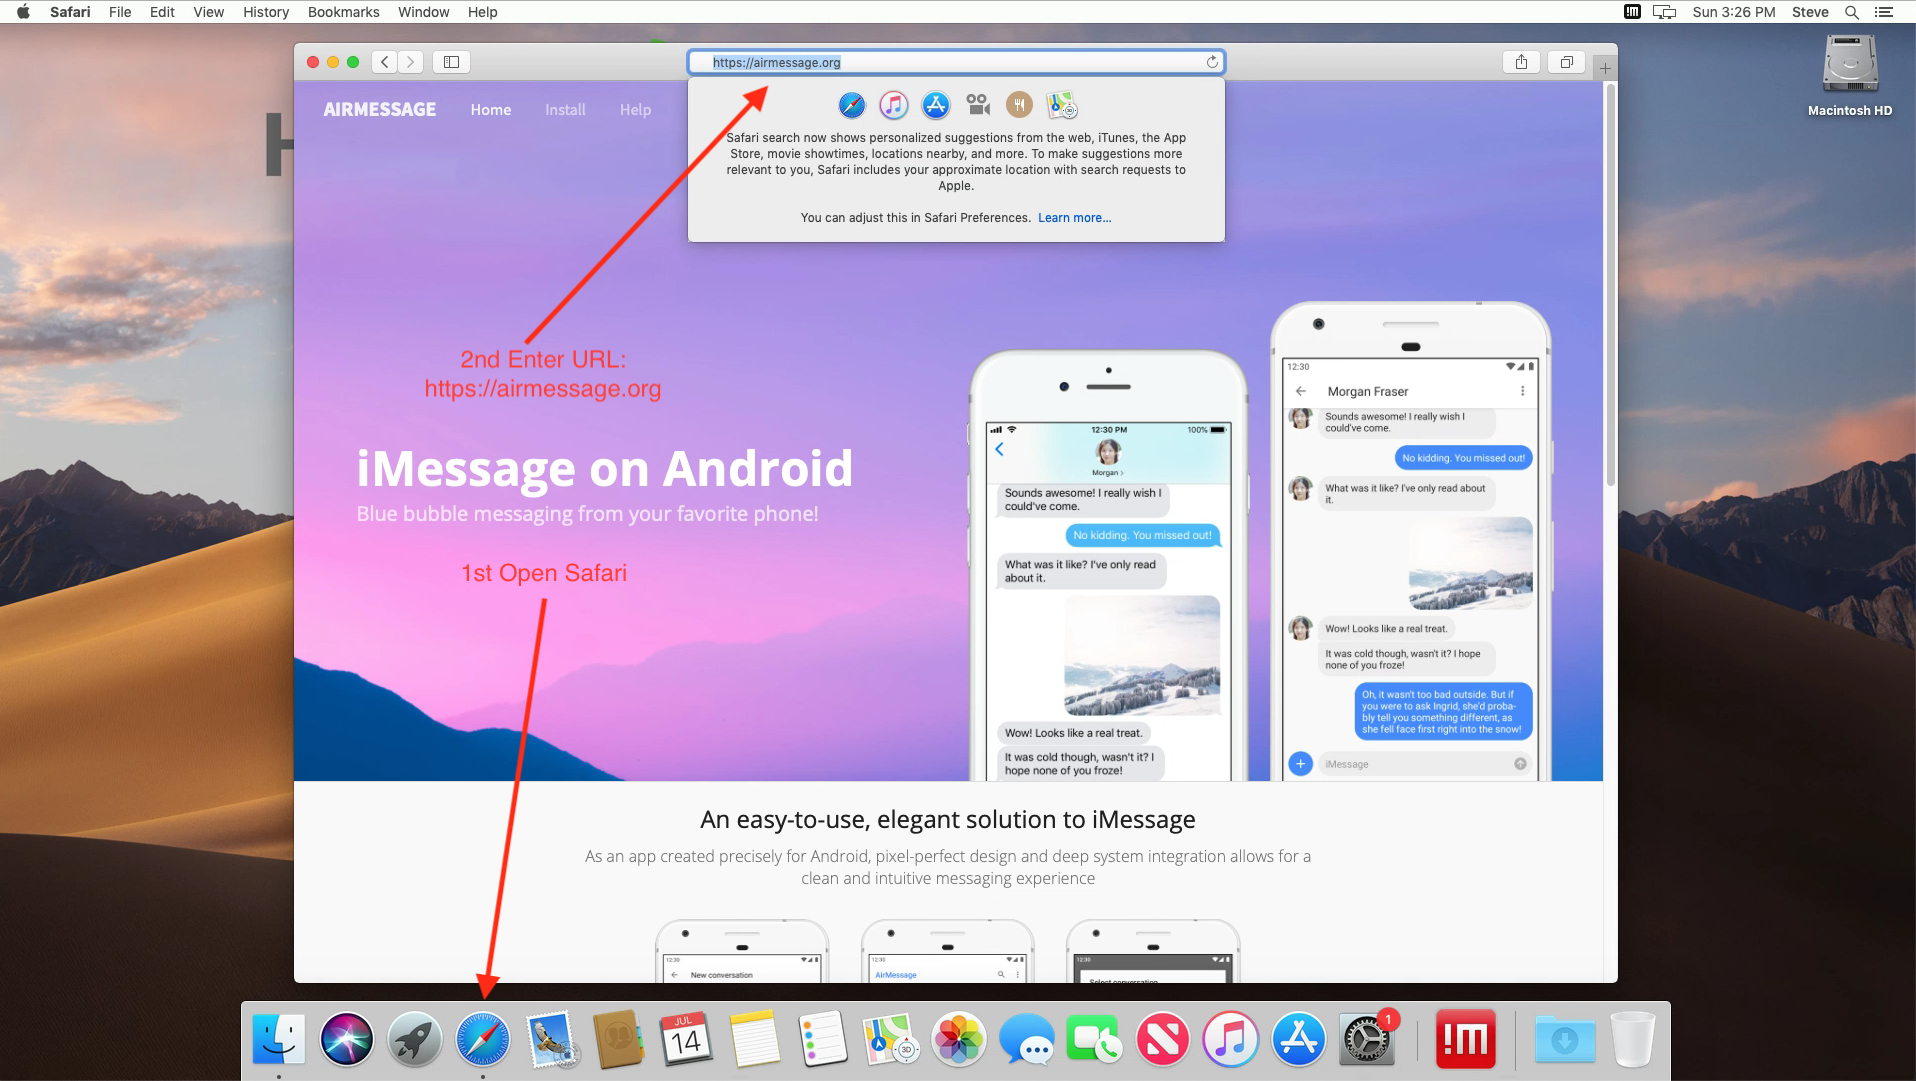 HostMyApple's Blog — How to use iMessage on Android with